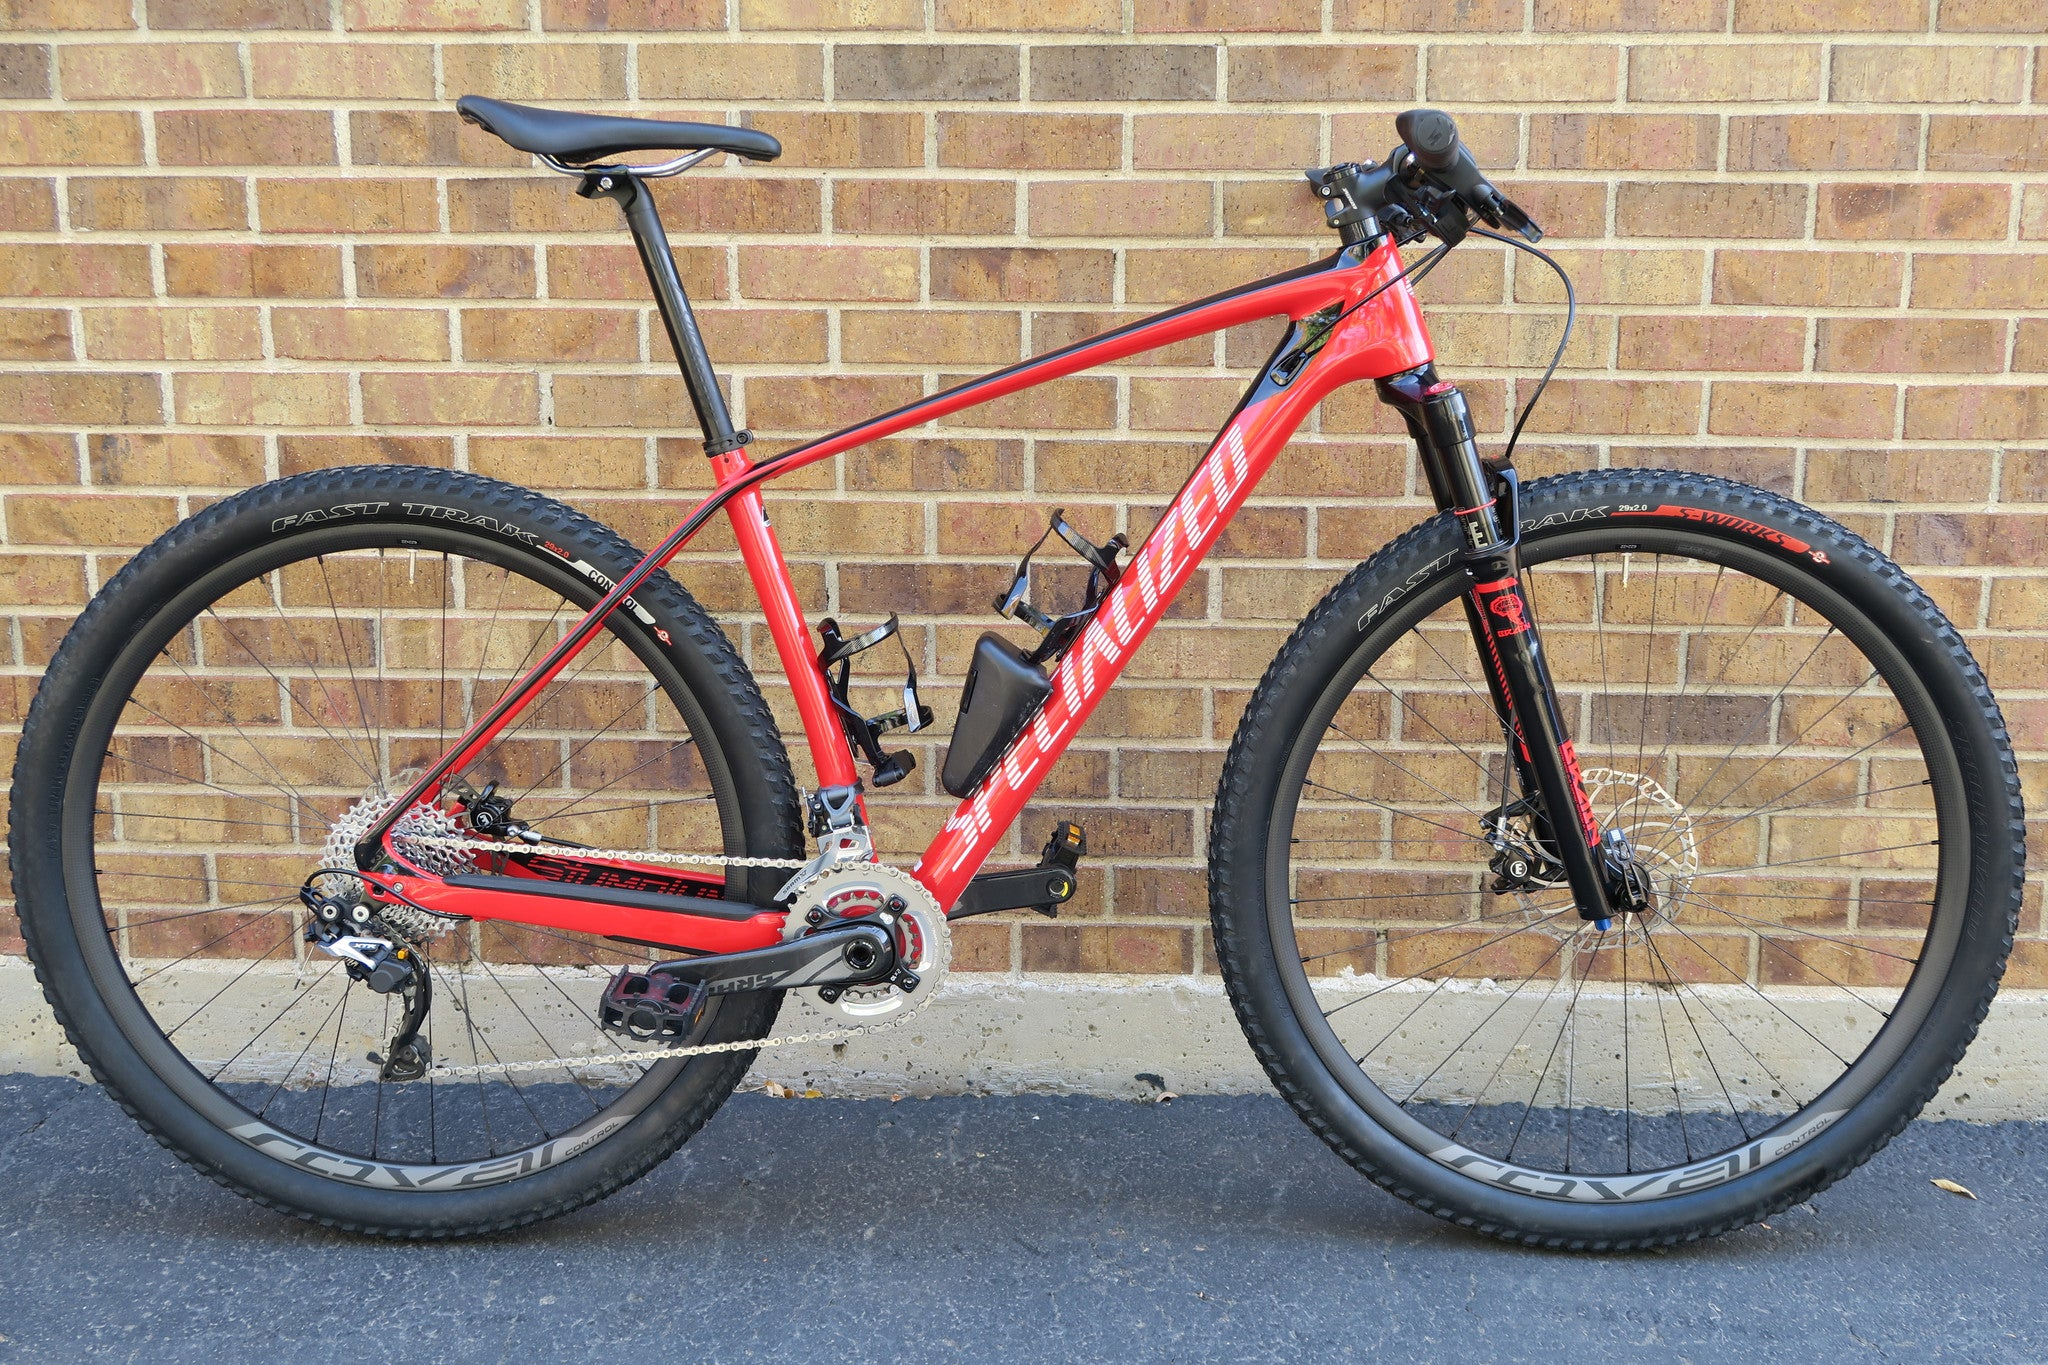 2014 SPECIALIZED STUMPJUMPER HT EXPERT CARBON 29 – Altitude Bicycles